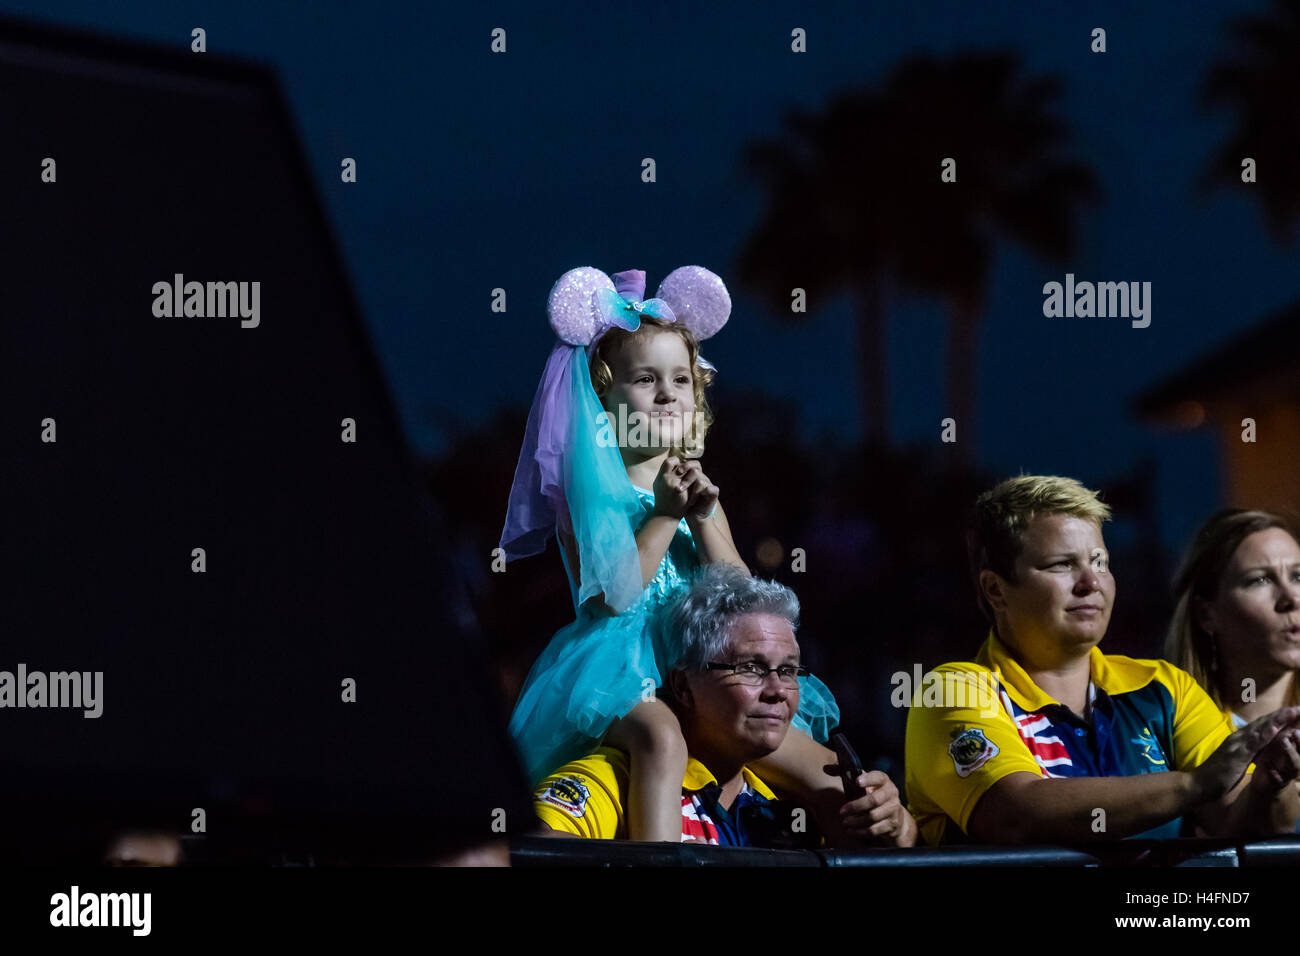 A young girl is entranced by Phillip Phillips' performance at the Closing Ceremony for the Invictus Games on - Stock Image